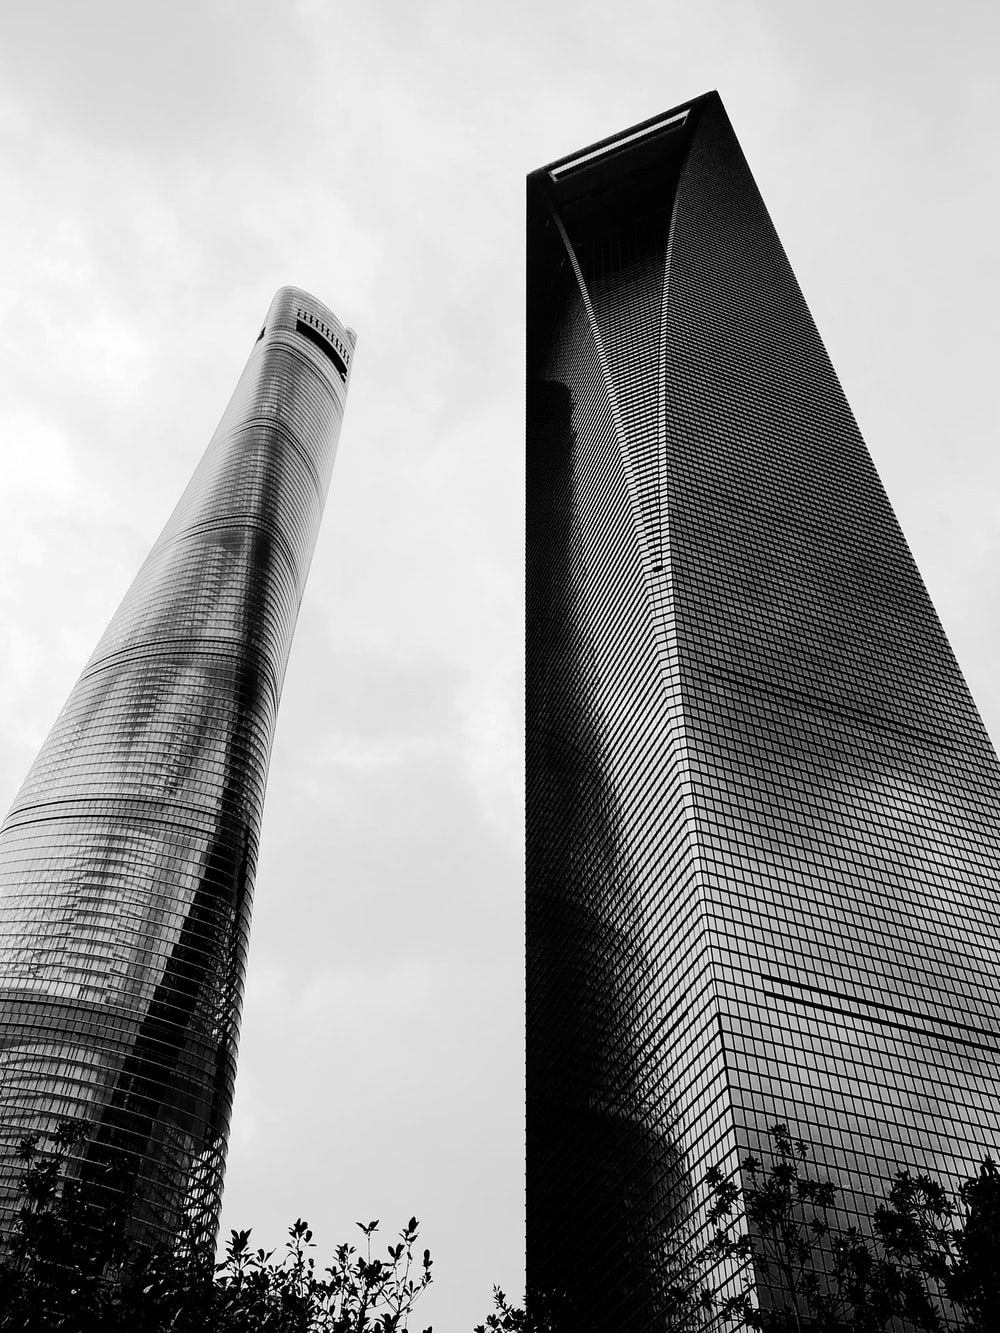 low-angle photography of two high-rise glass buildings